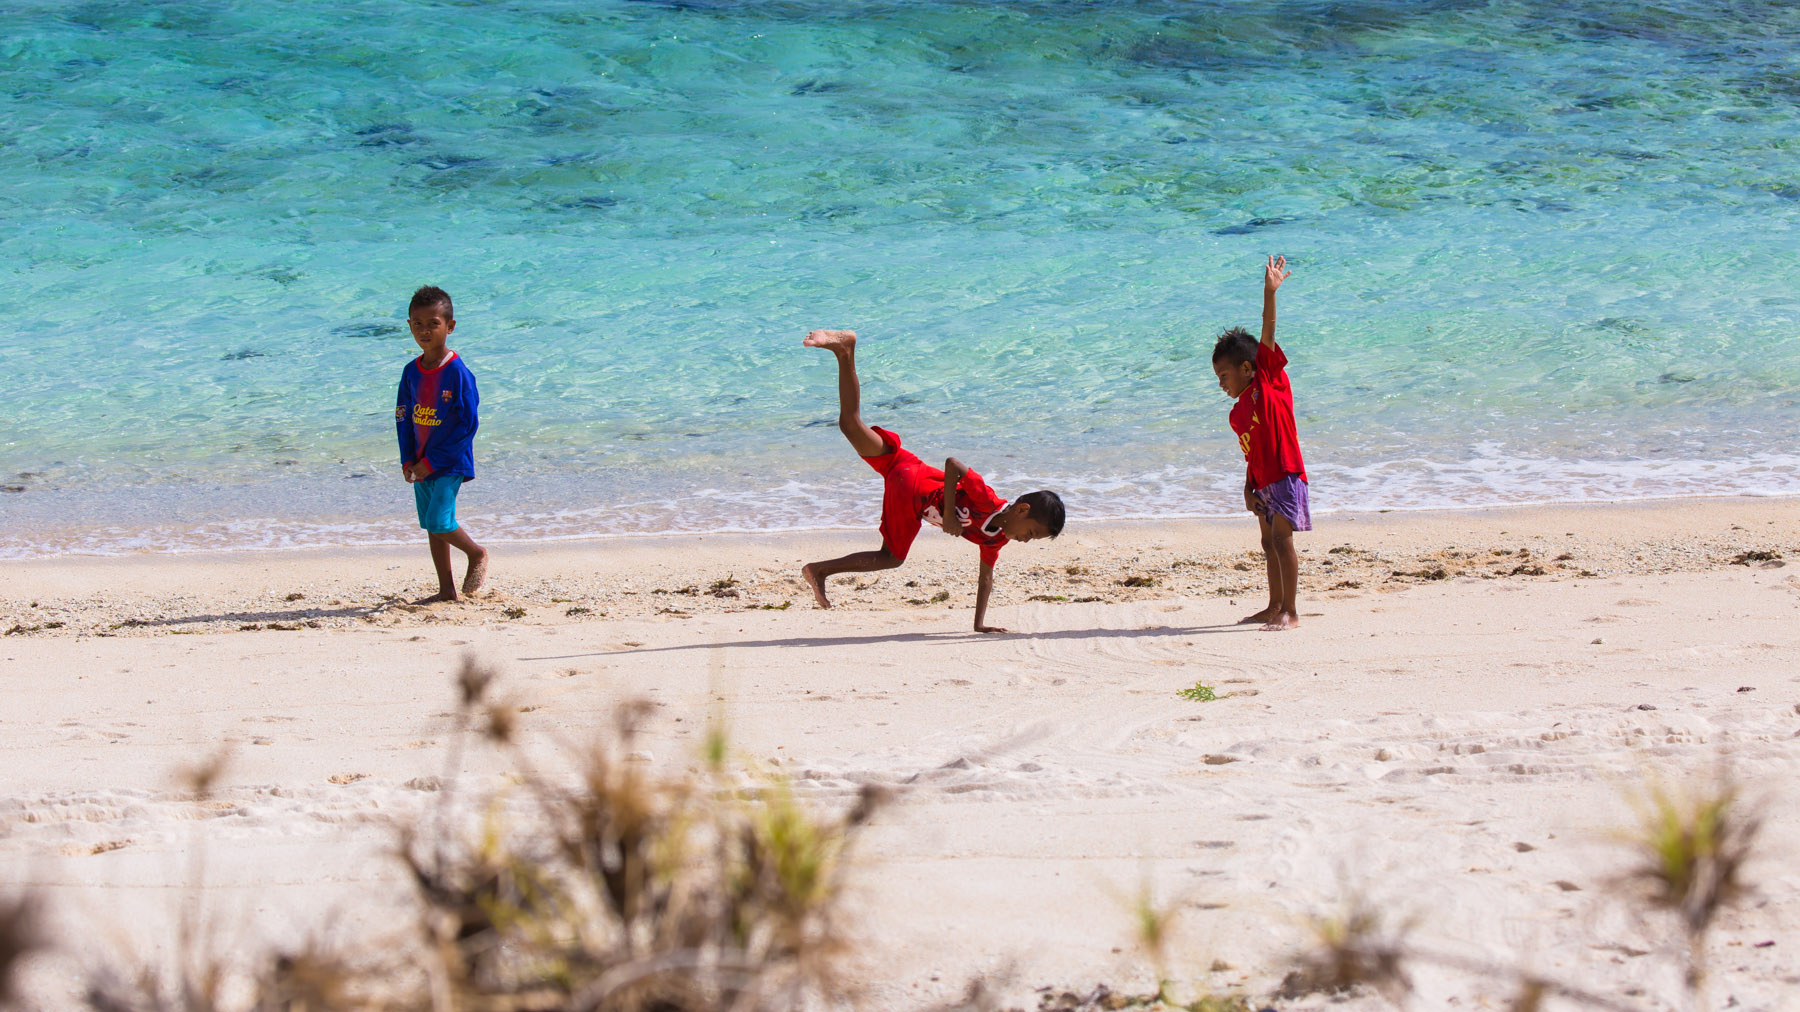 local children play on the beach